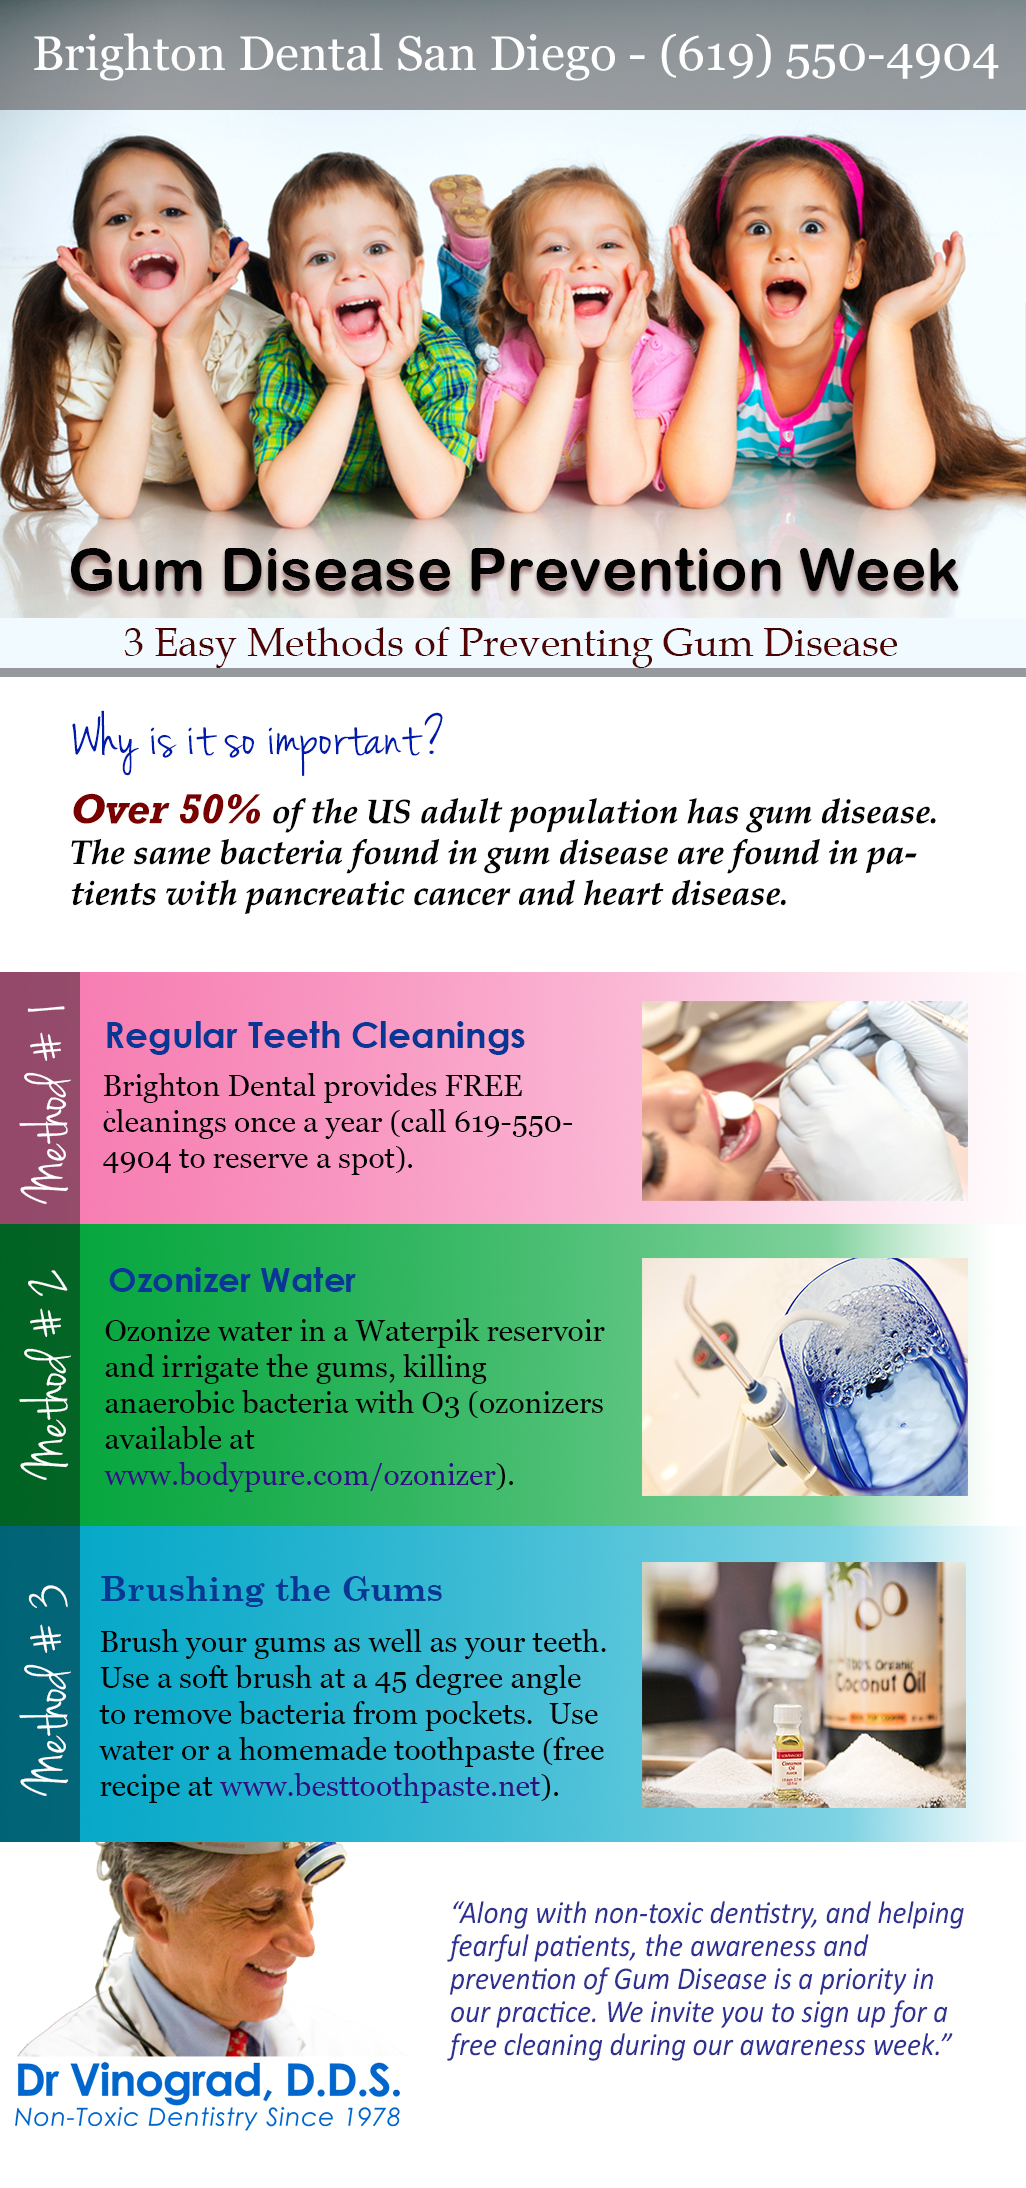 Gum Disease Prevention Week